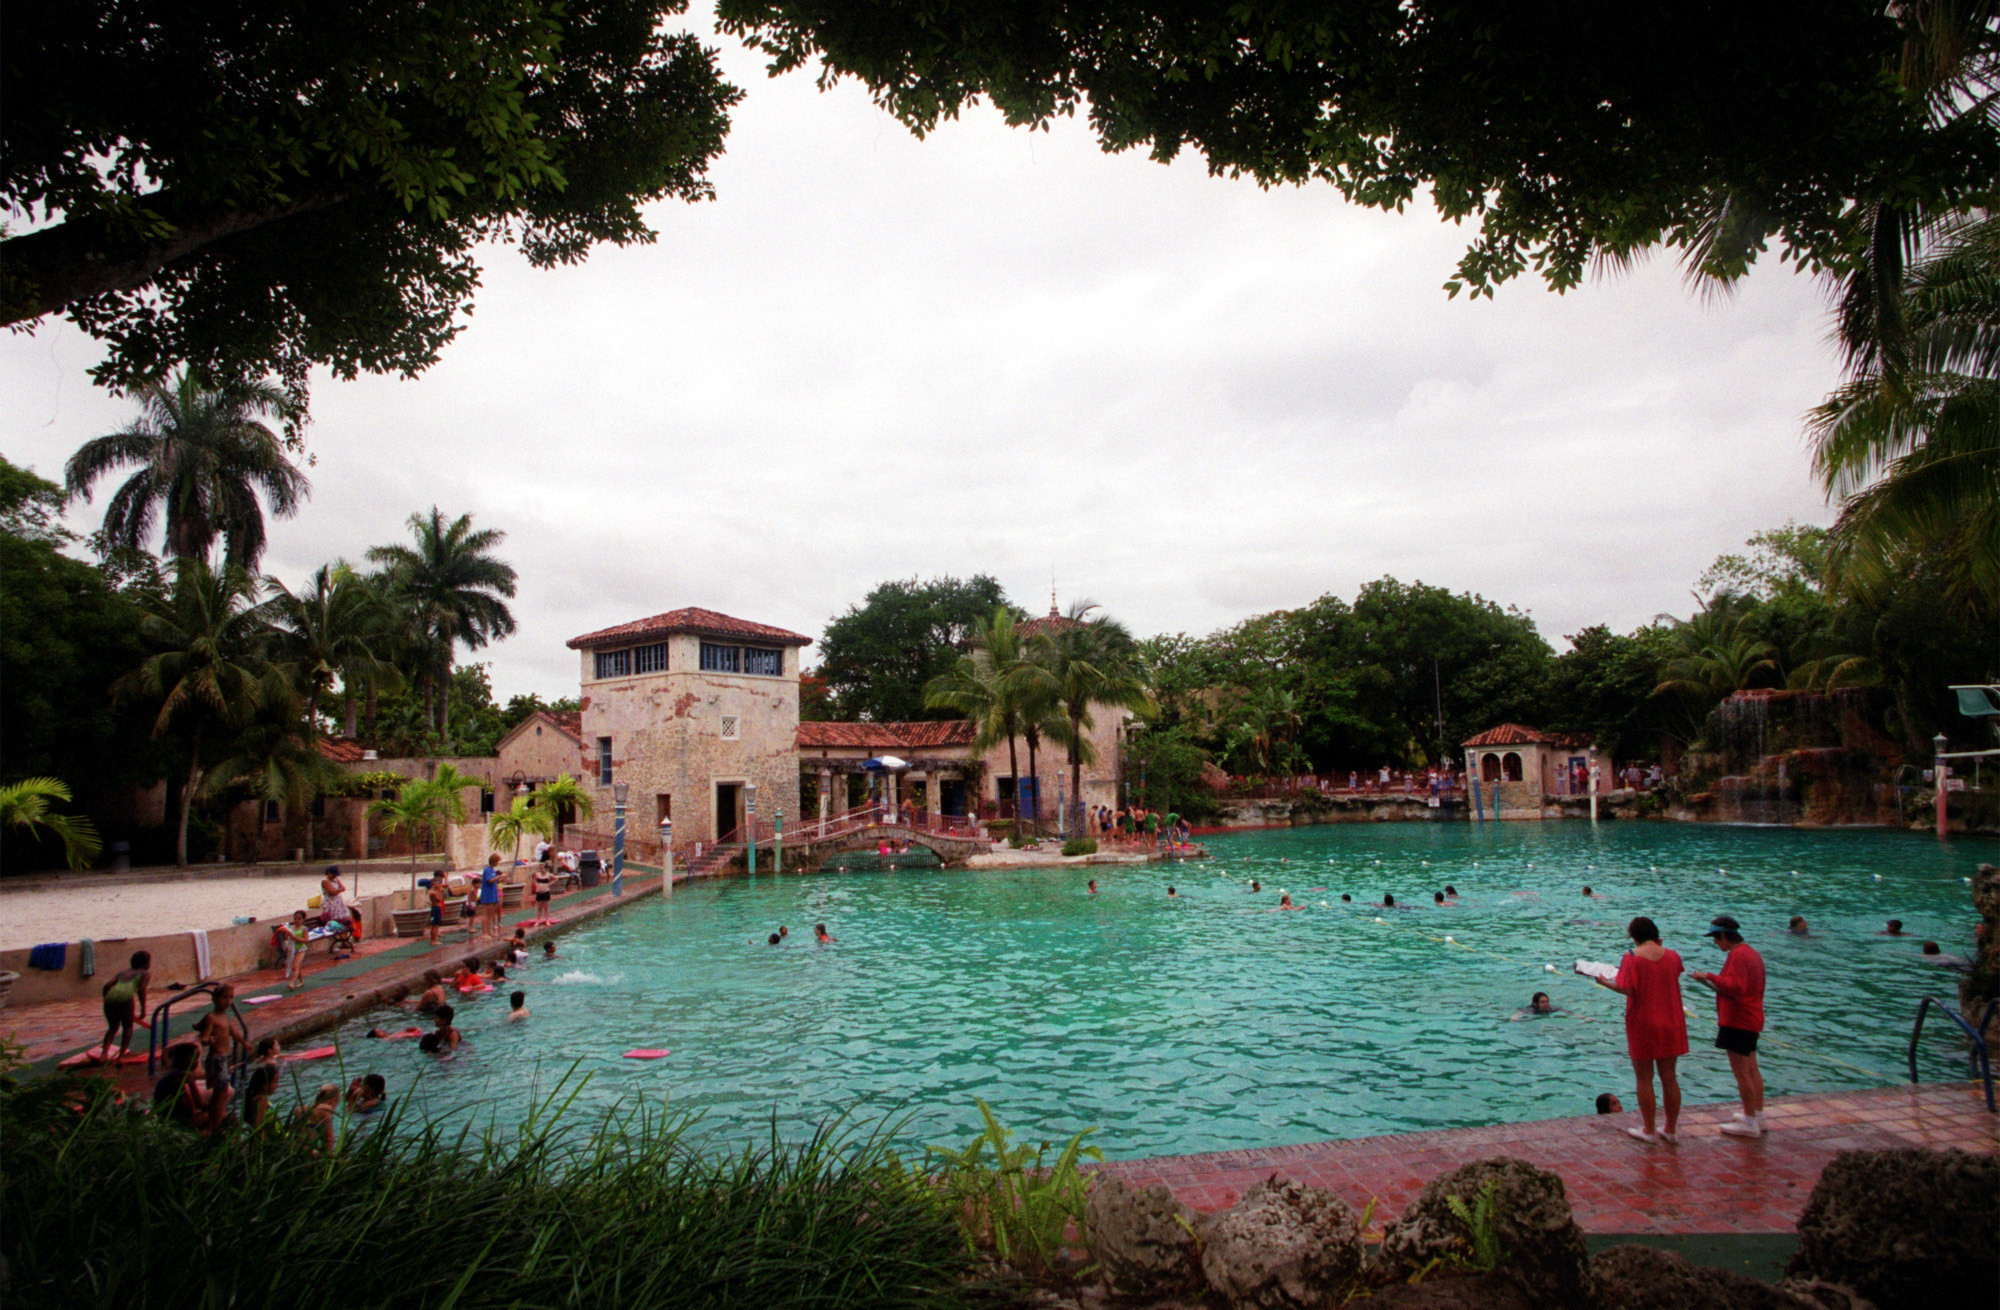 Things every South Floridian should do once - Venetian Pool in Coral Gables